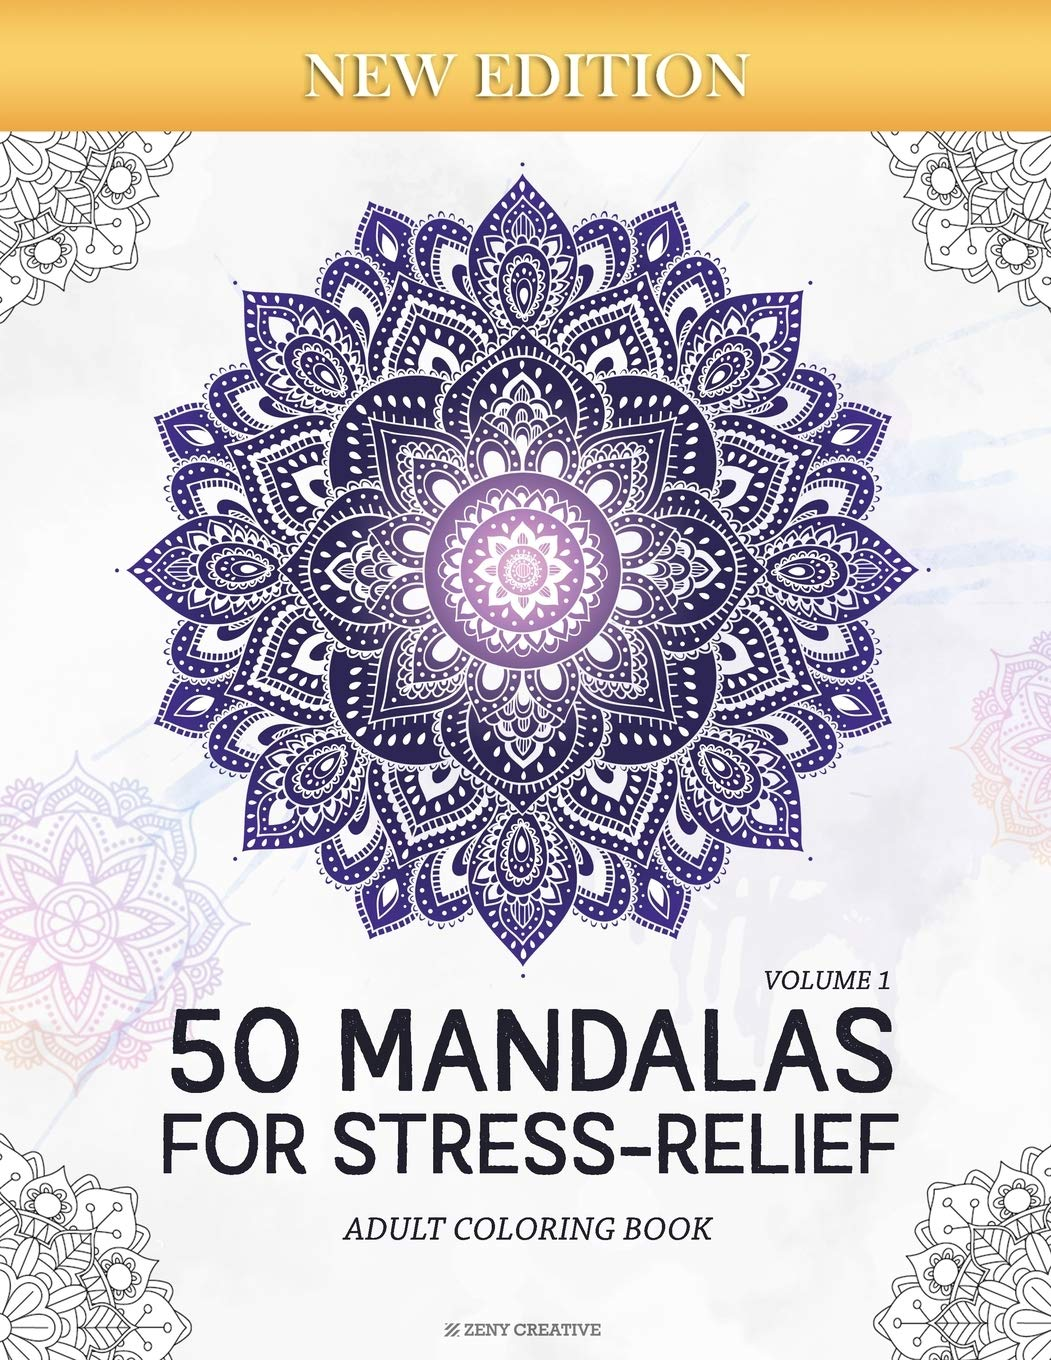 - 50 Mandalas For Stress-Relief (Volume 1) Adult Coloring Book